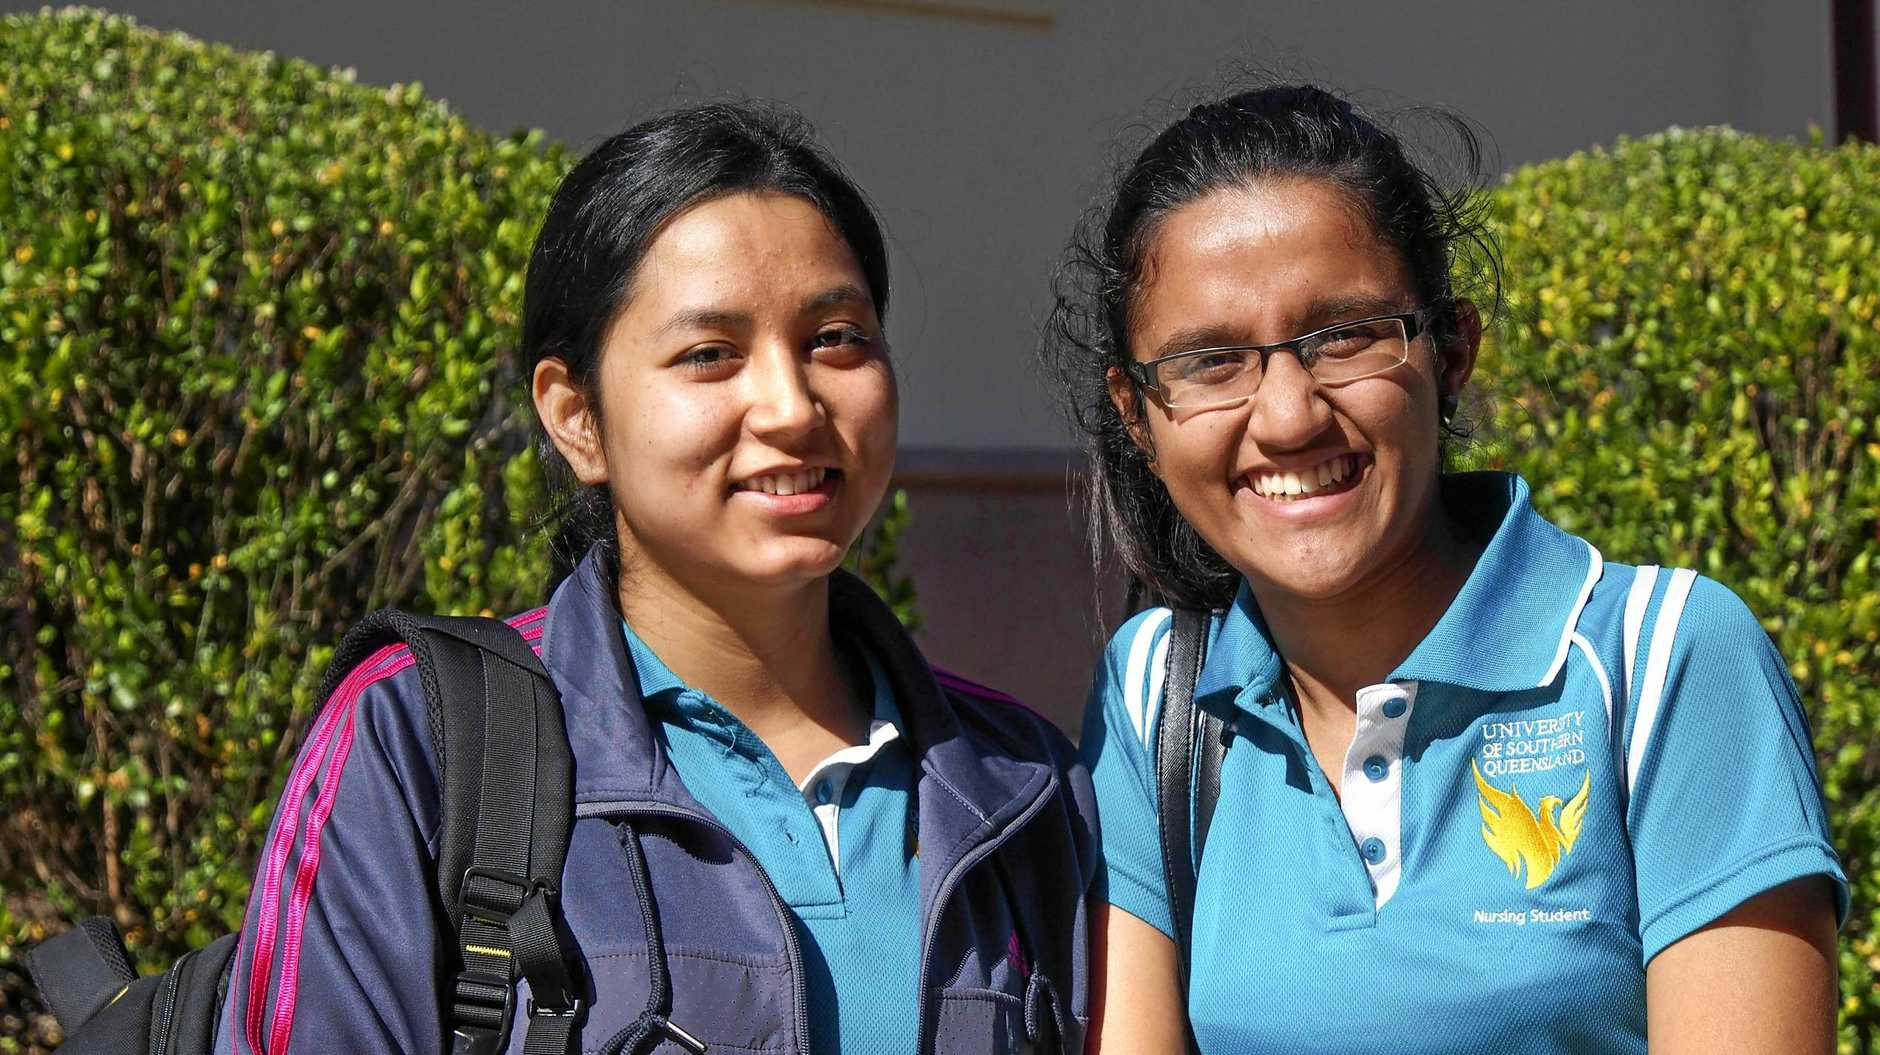 USQ international students Samikshya Paudel and Nisha Thapa moved to Australia from Nepal to study nursing in Queensland.